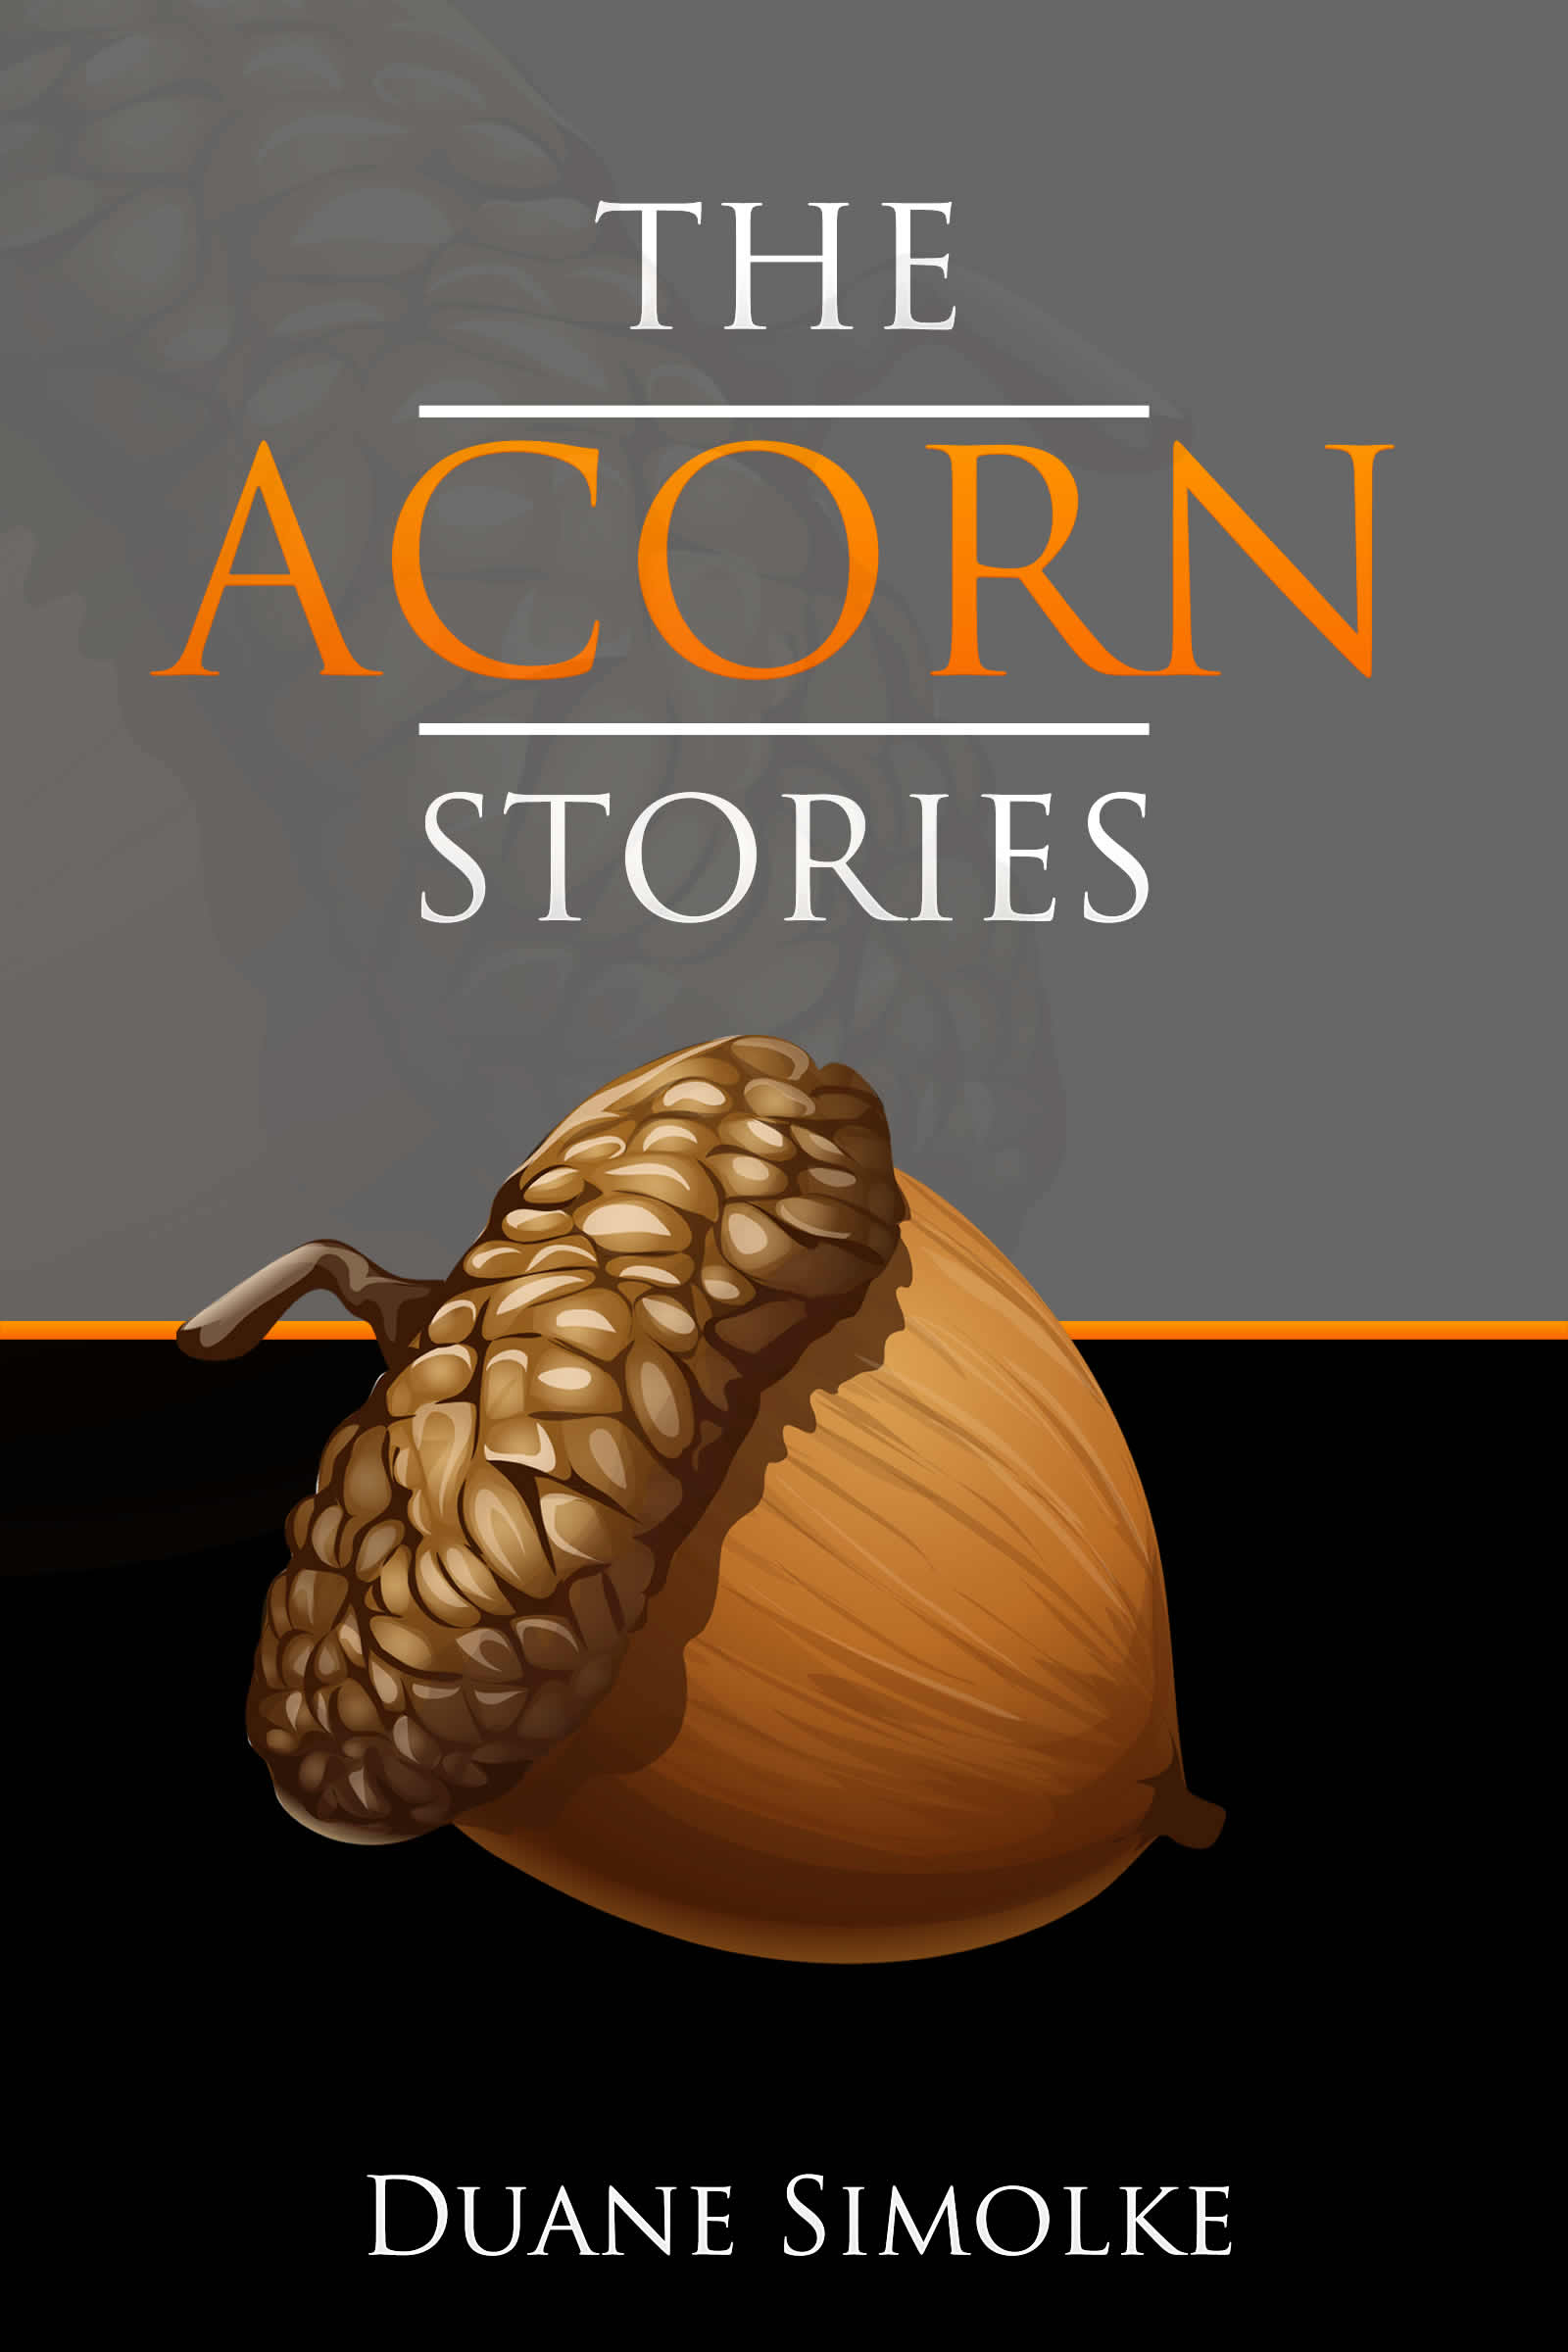 The Acorn Stories's Ebook Image